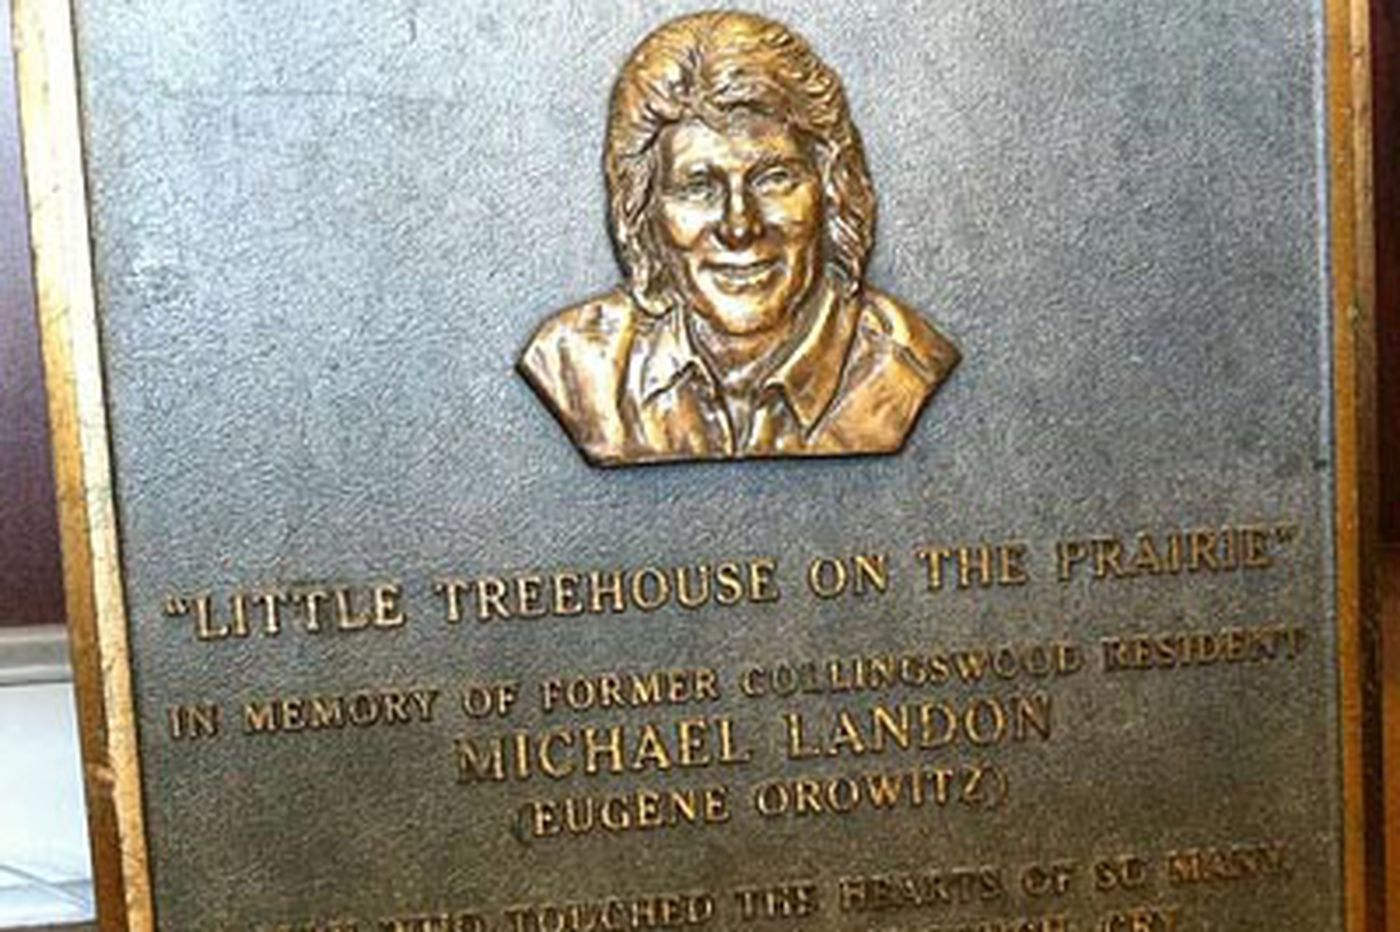 Kevin Riordan: Landon plaque sidelined; accounts vary